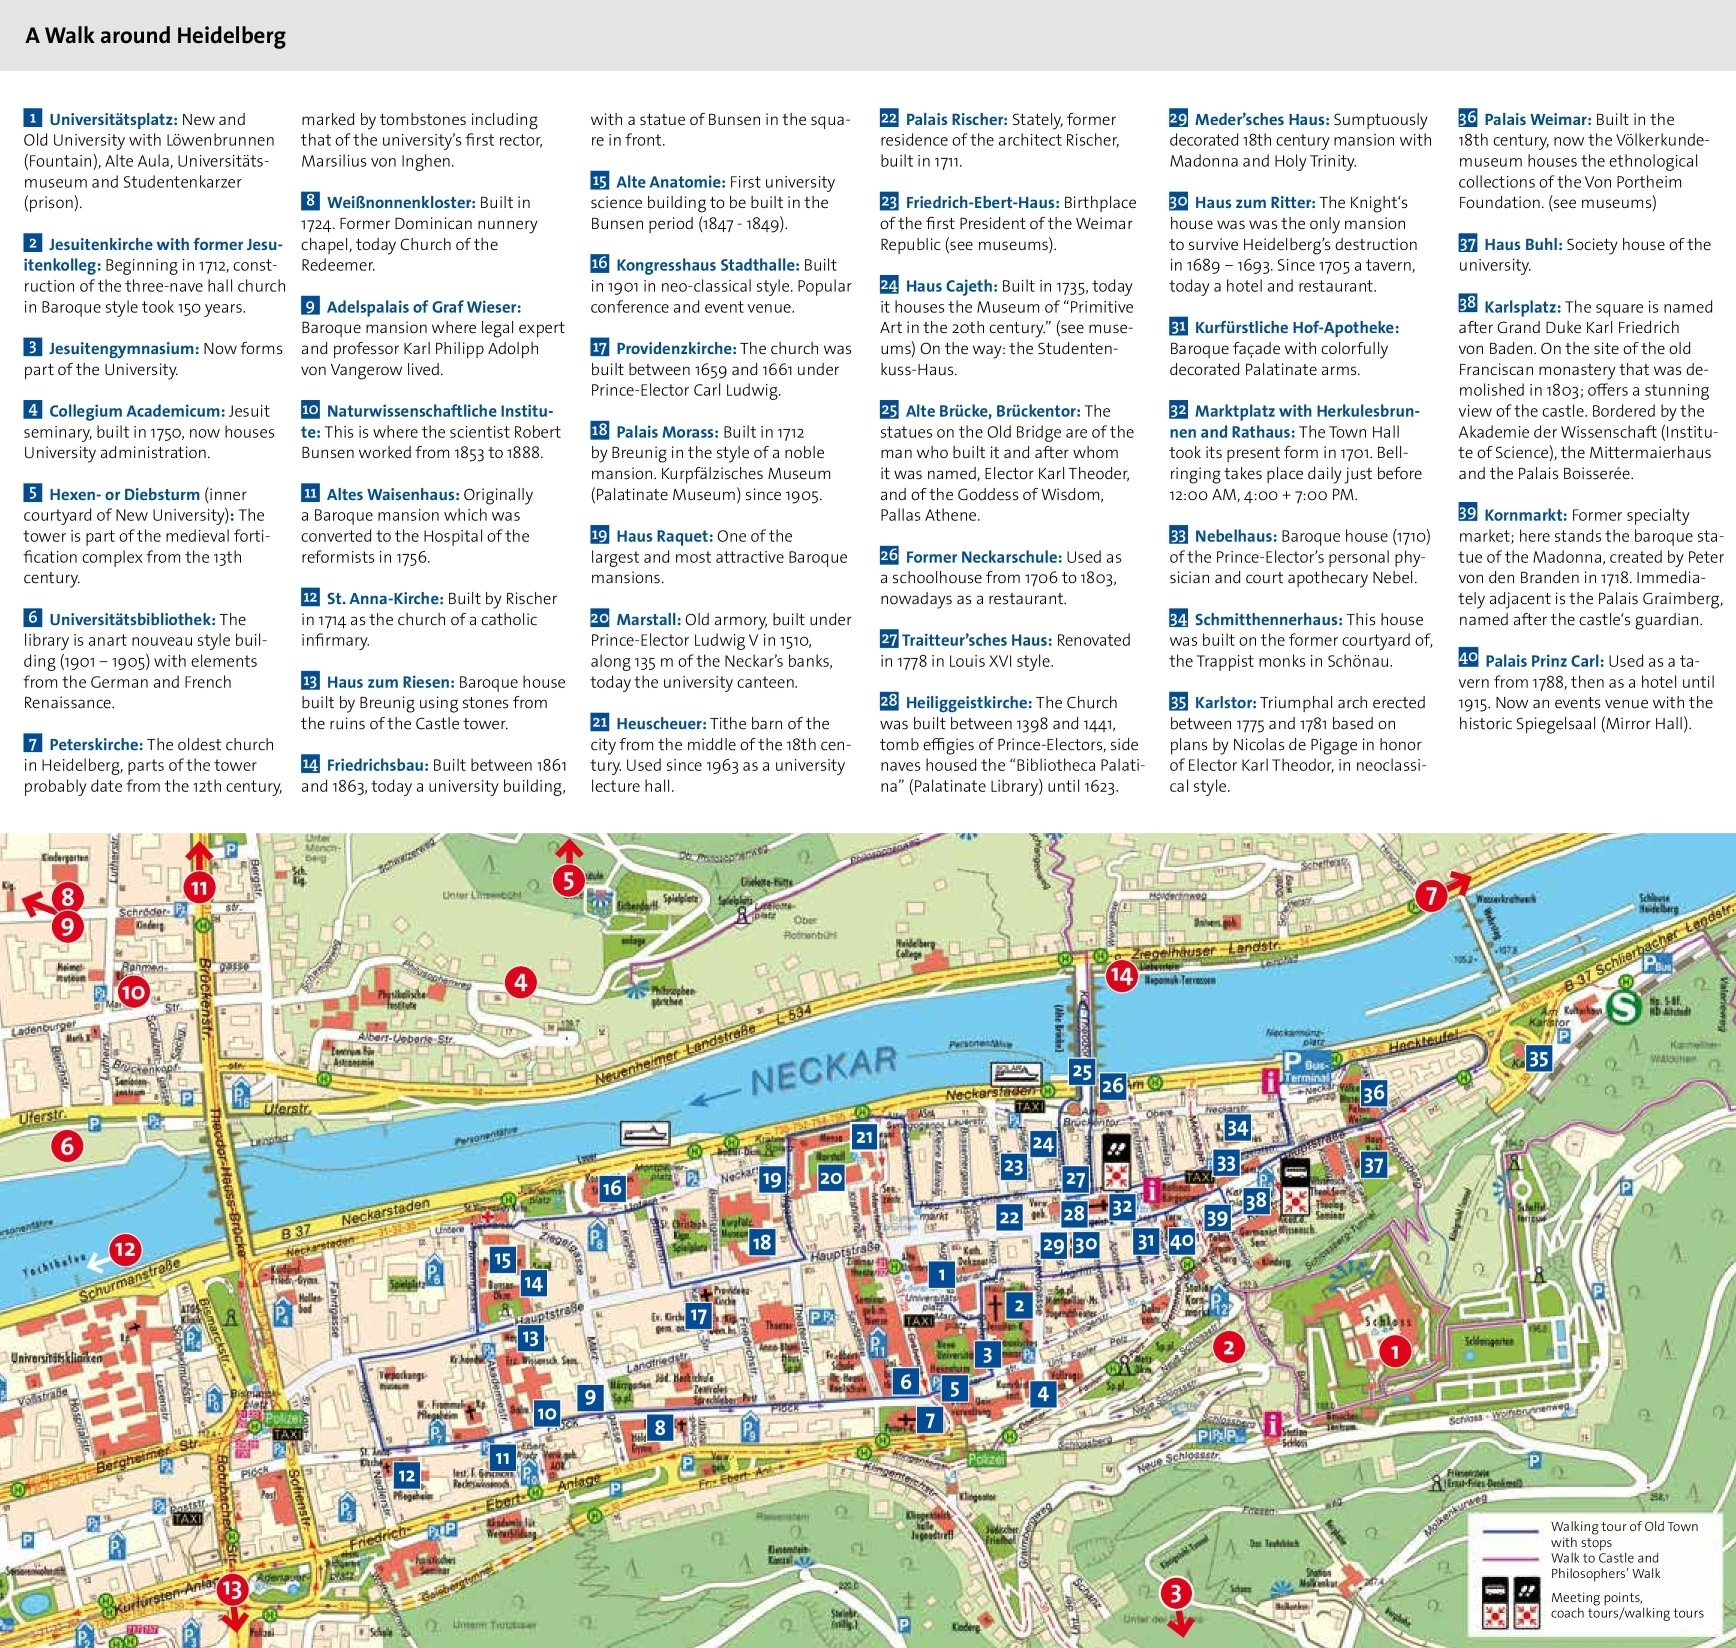 Heidelberg Tourist Attractions Map intended for City Map Of Heidelberg Germany